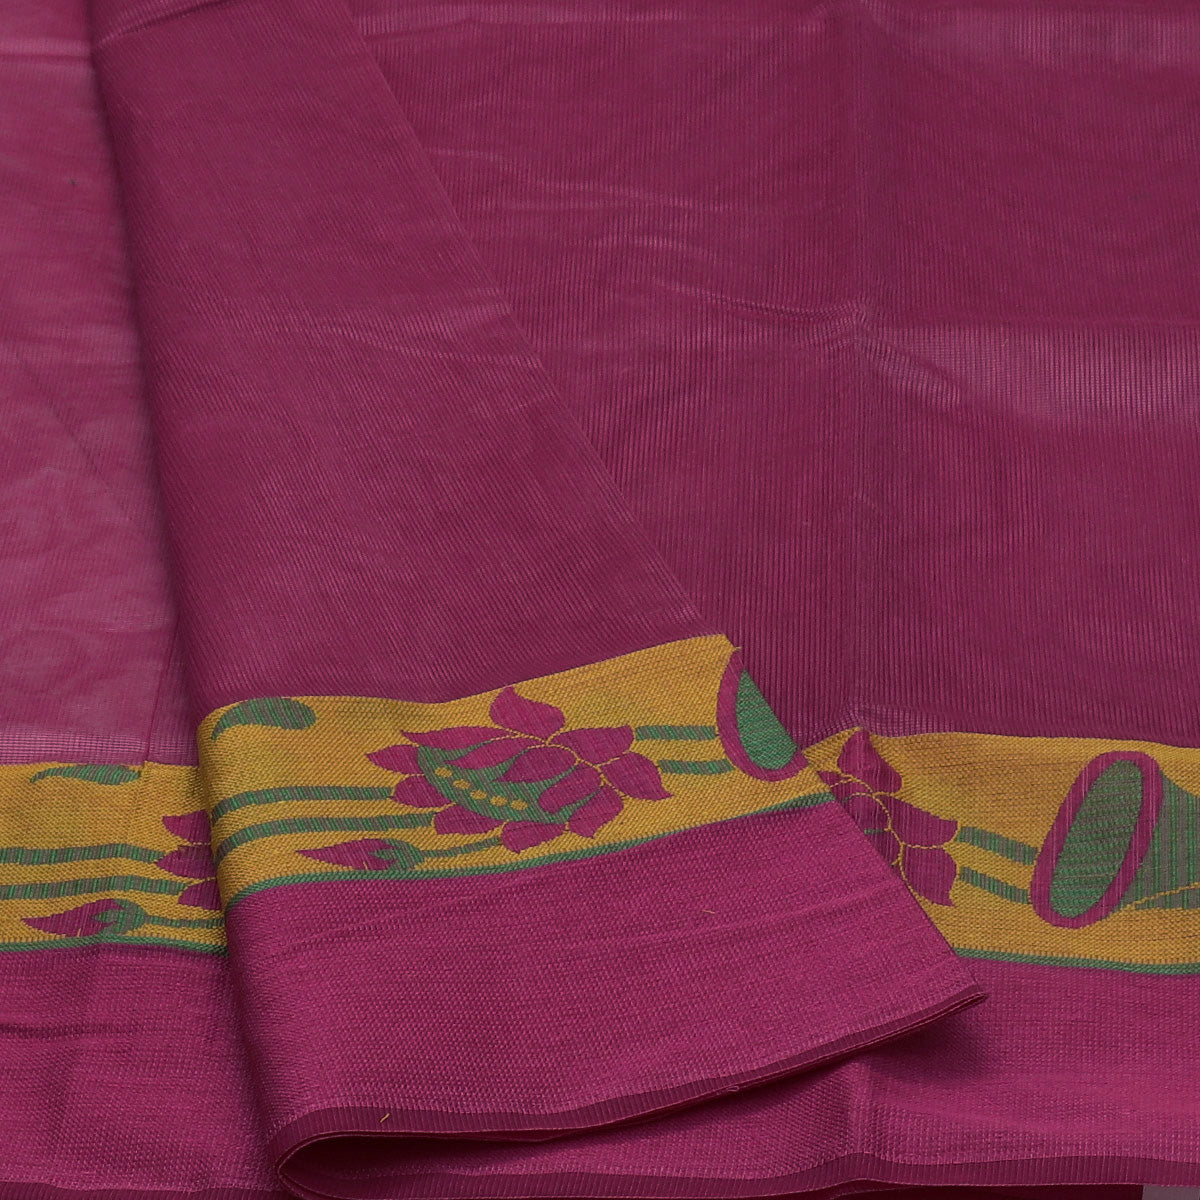 Kota Cotton Saree Pink Shade and Yellow with Floral Design Border and Blouse